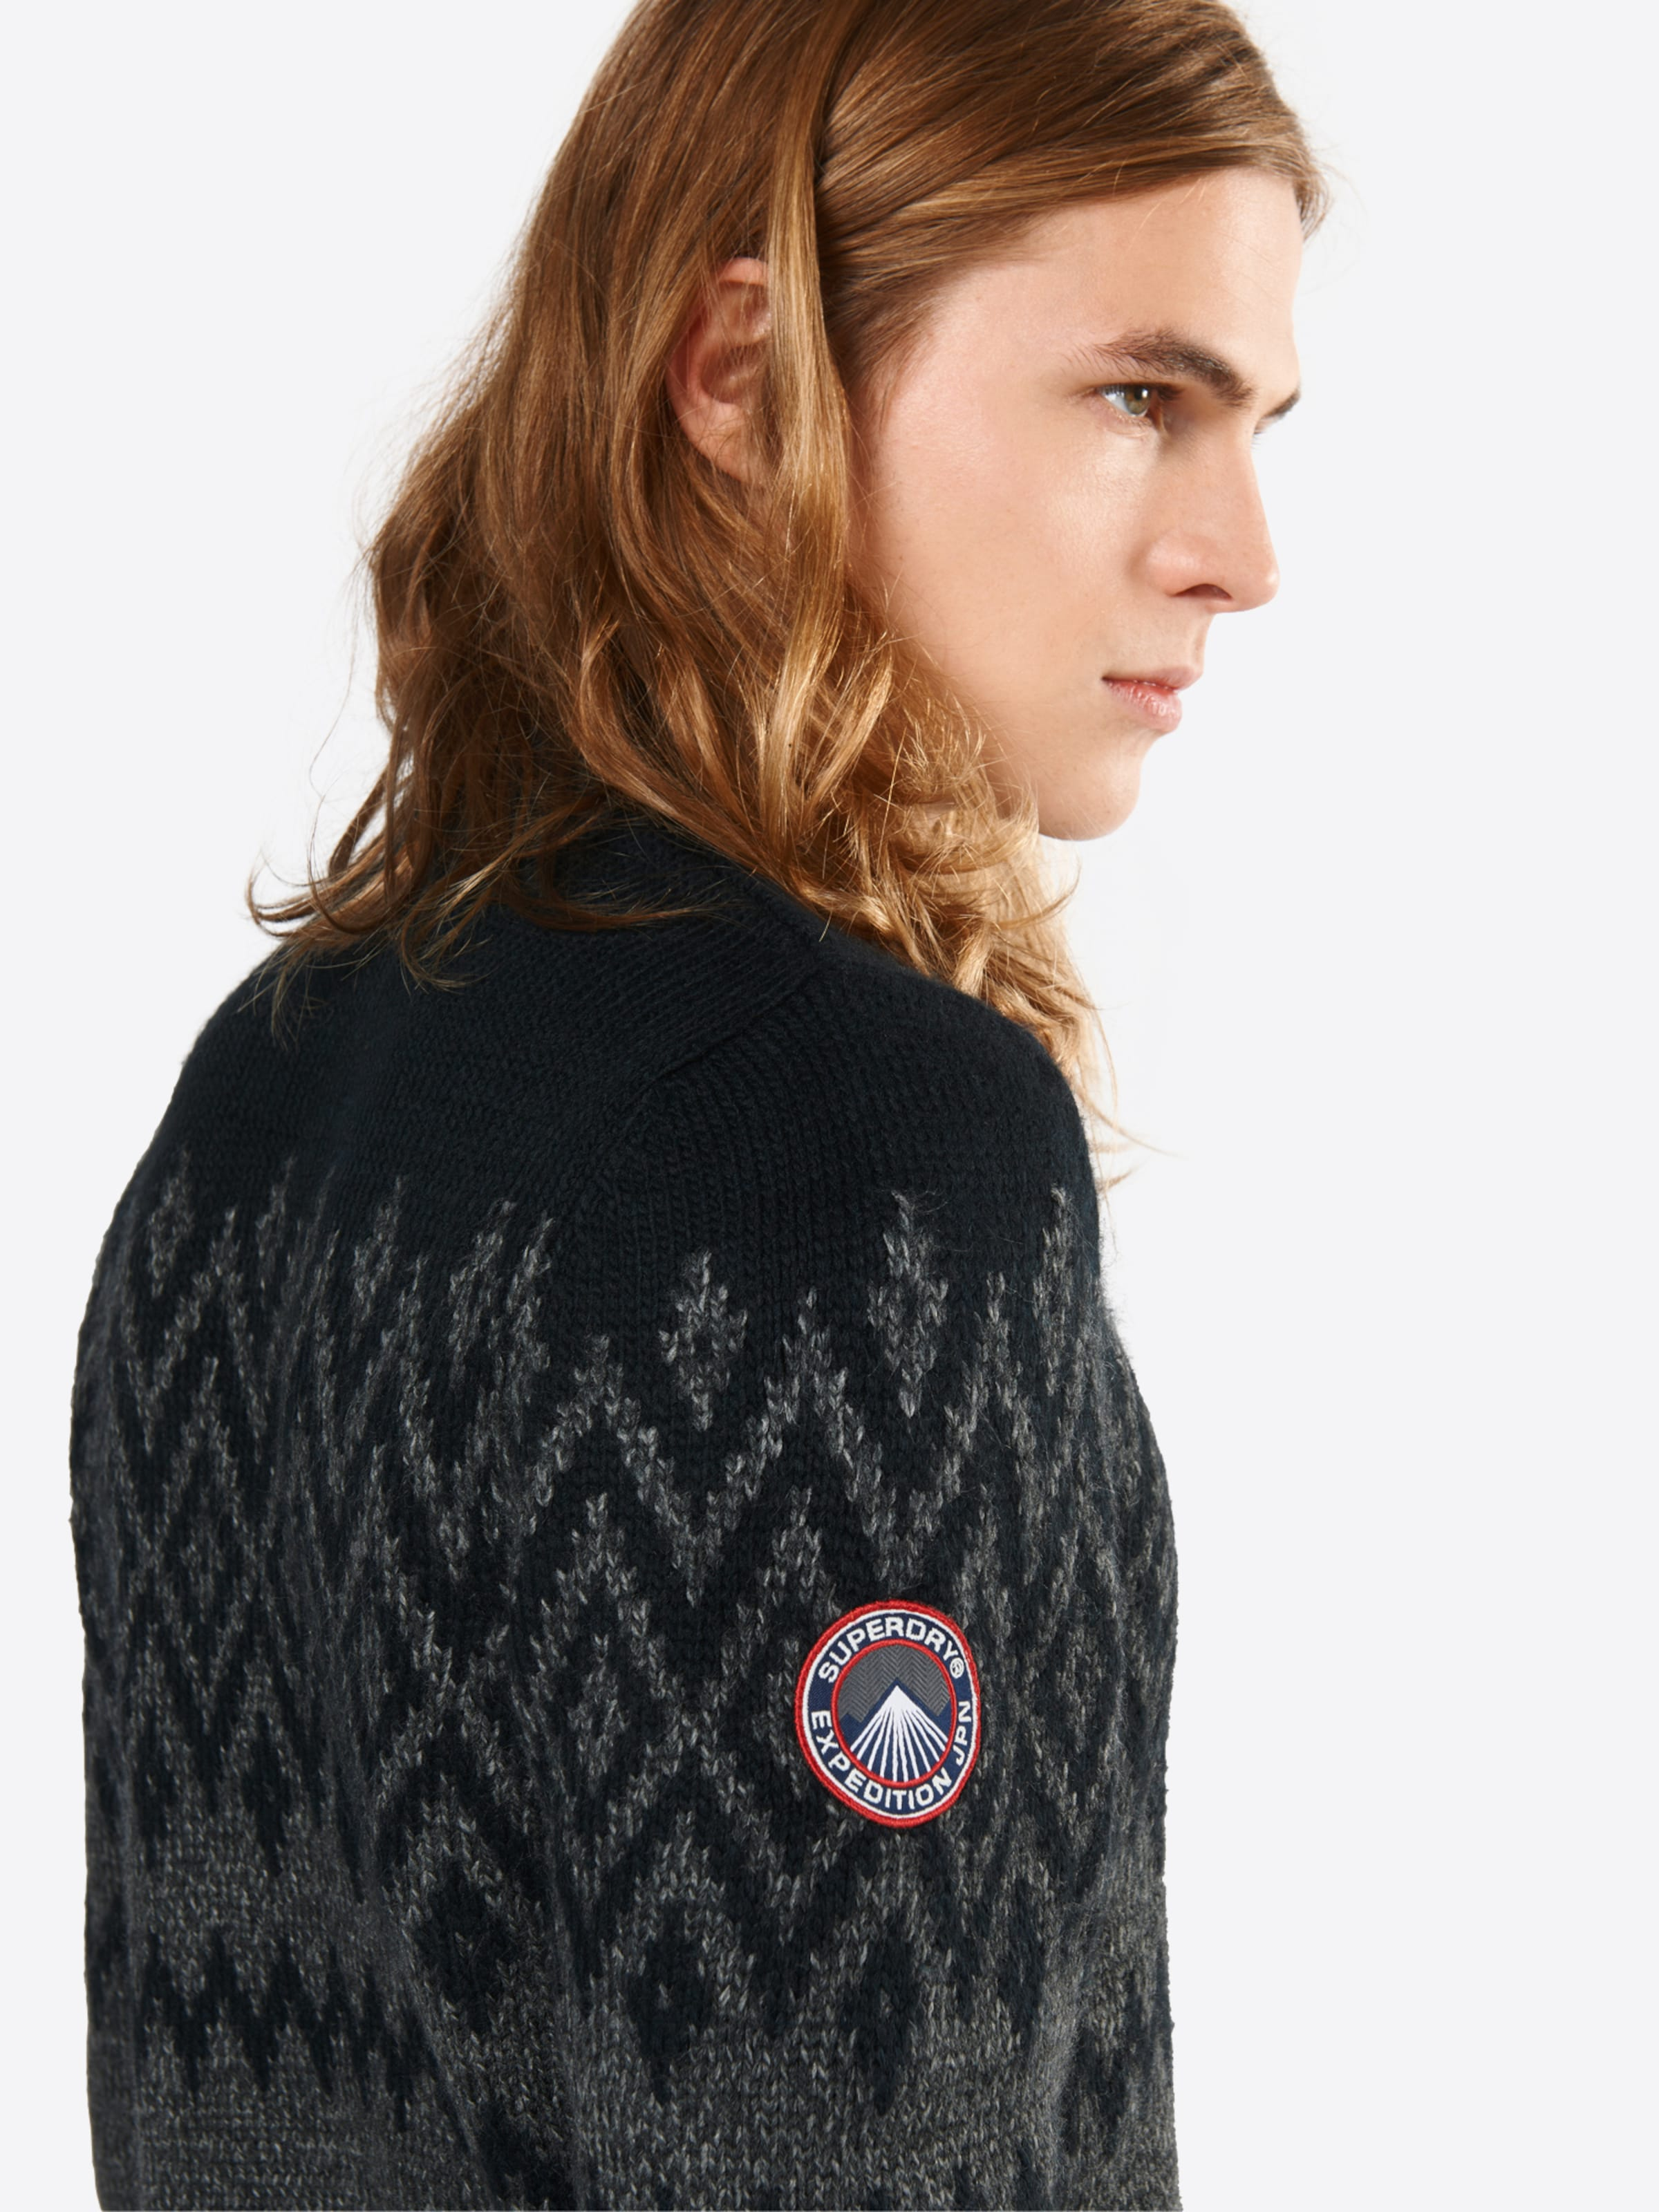 JUMPER' Superdry CHEVRON Pullover Pullover Superdry 'DIAMOND 1YCnqagC